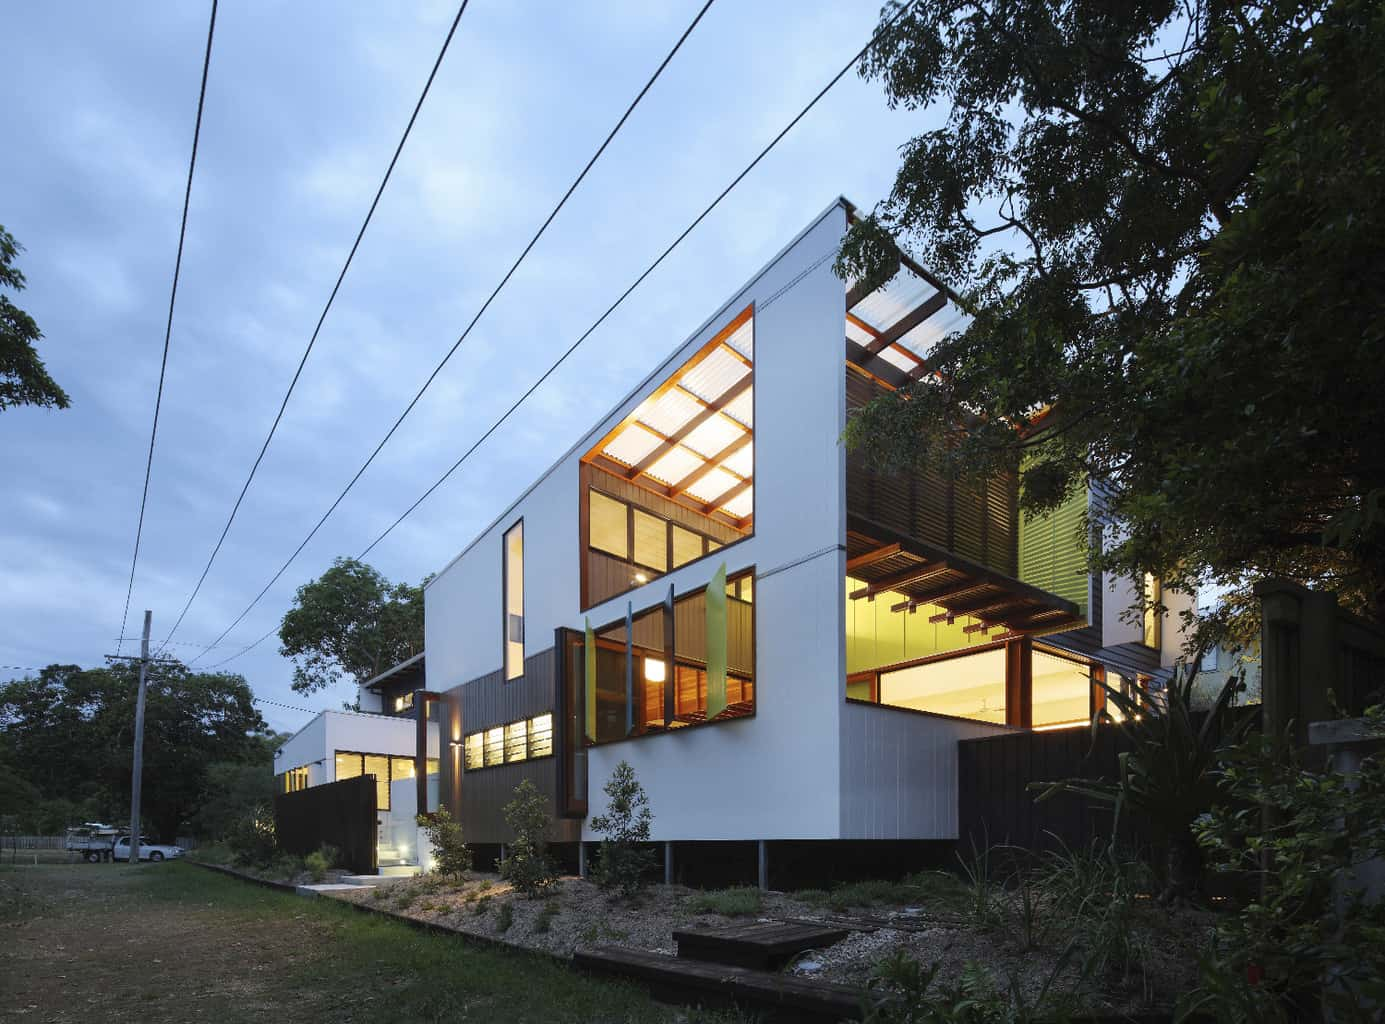 Pod style architecture on Stradbroke Island